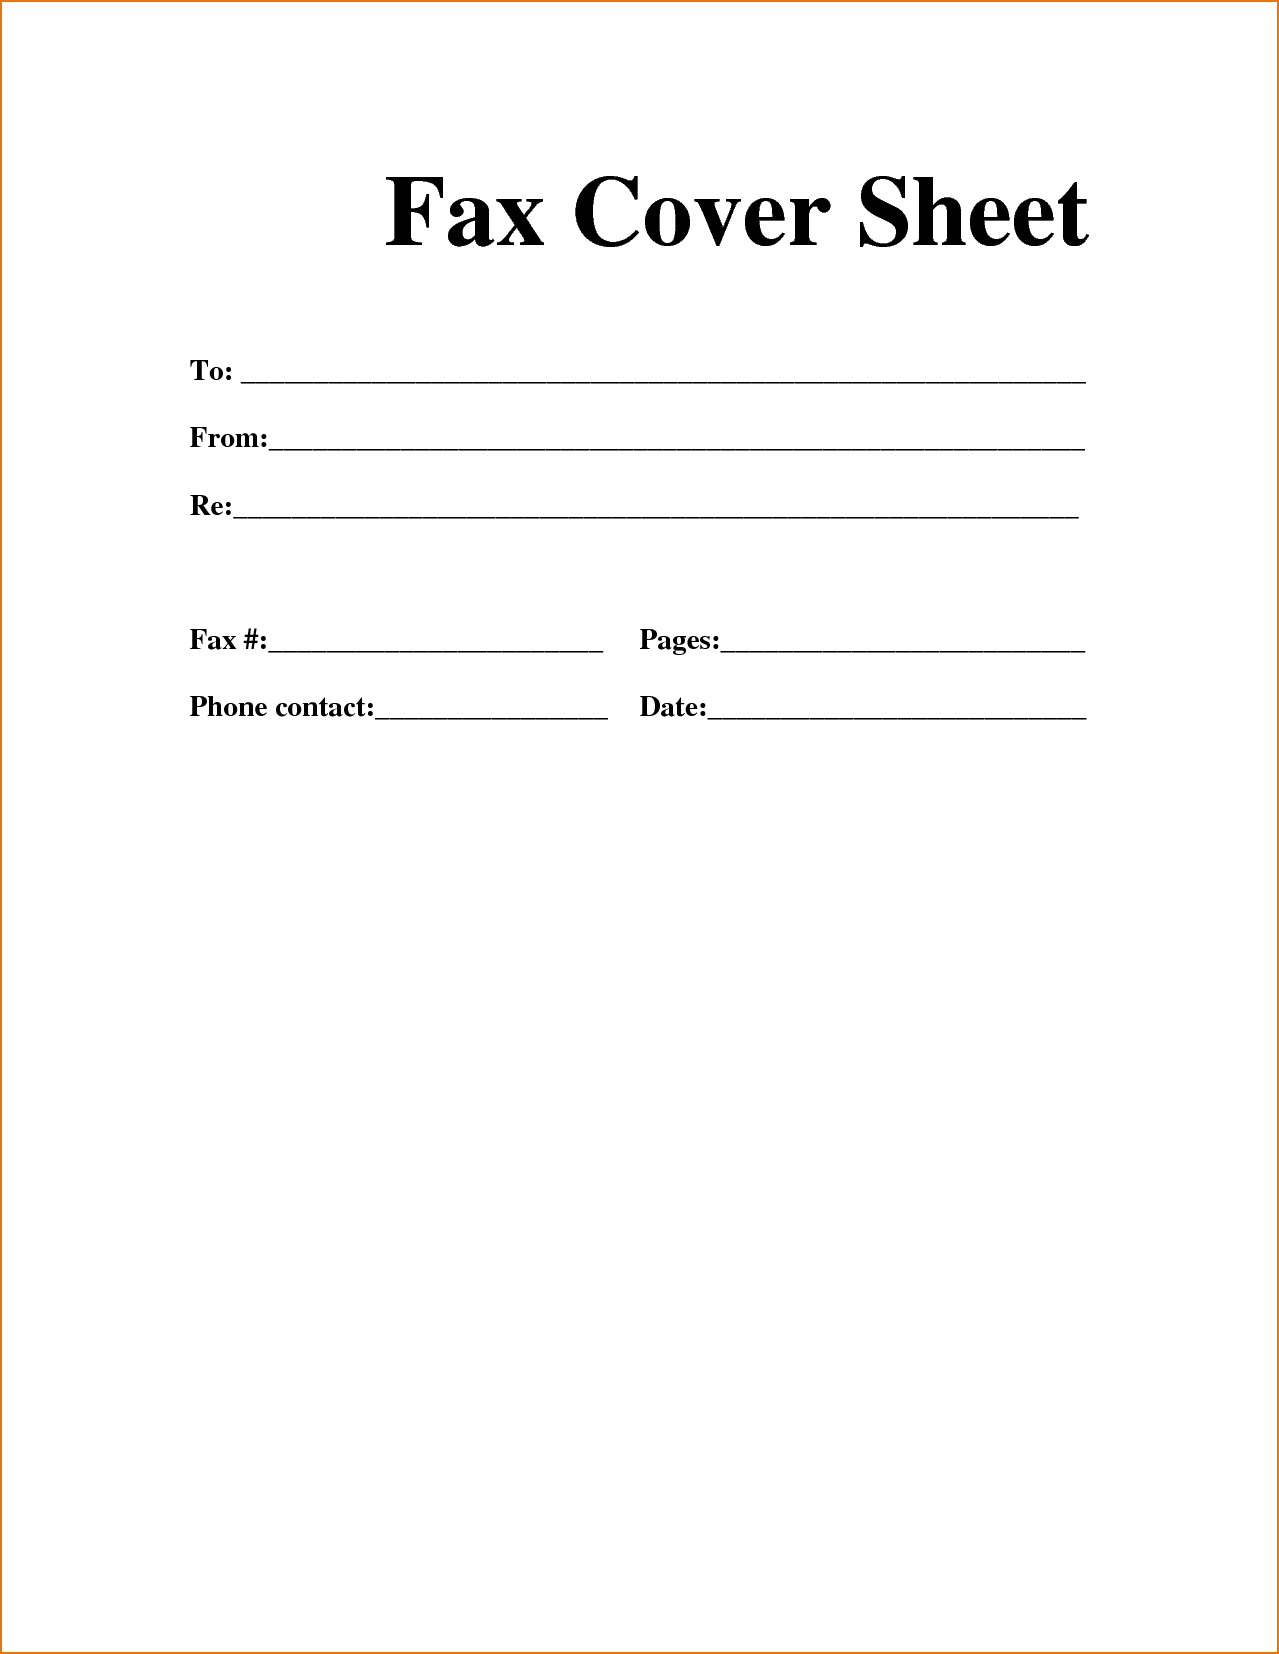 Sample Personal Fax Cover Sheet | Template In 2019 | Cover Sheet - Free Printable Fax Cover Page